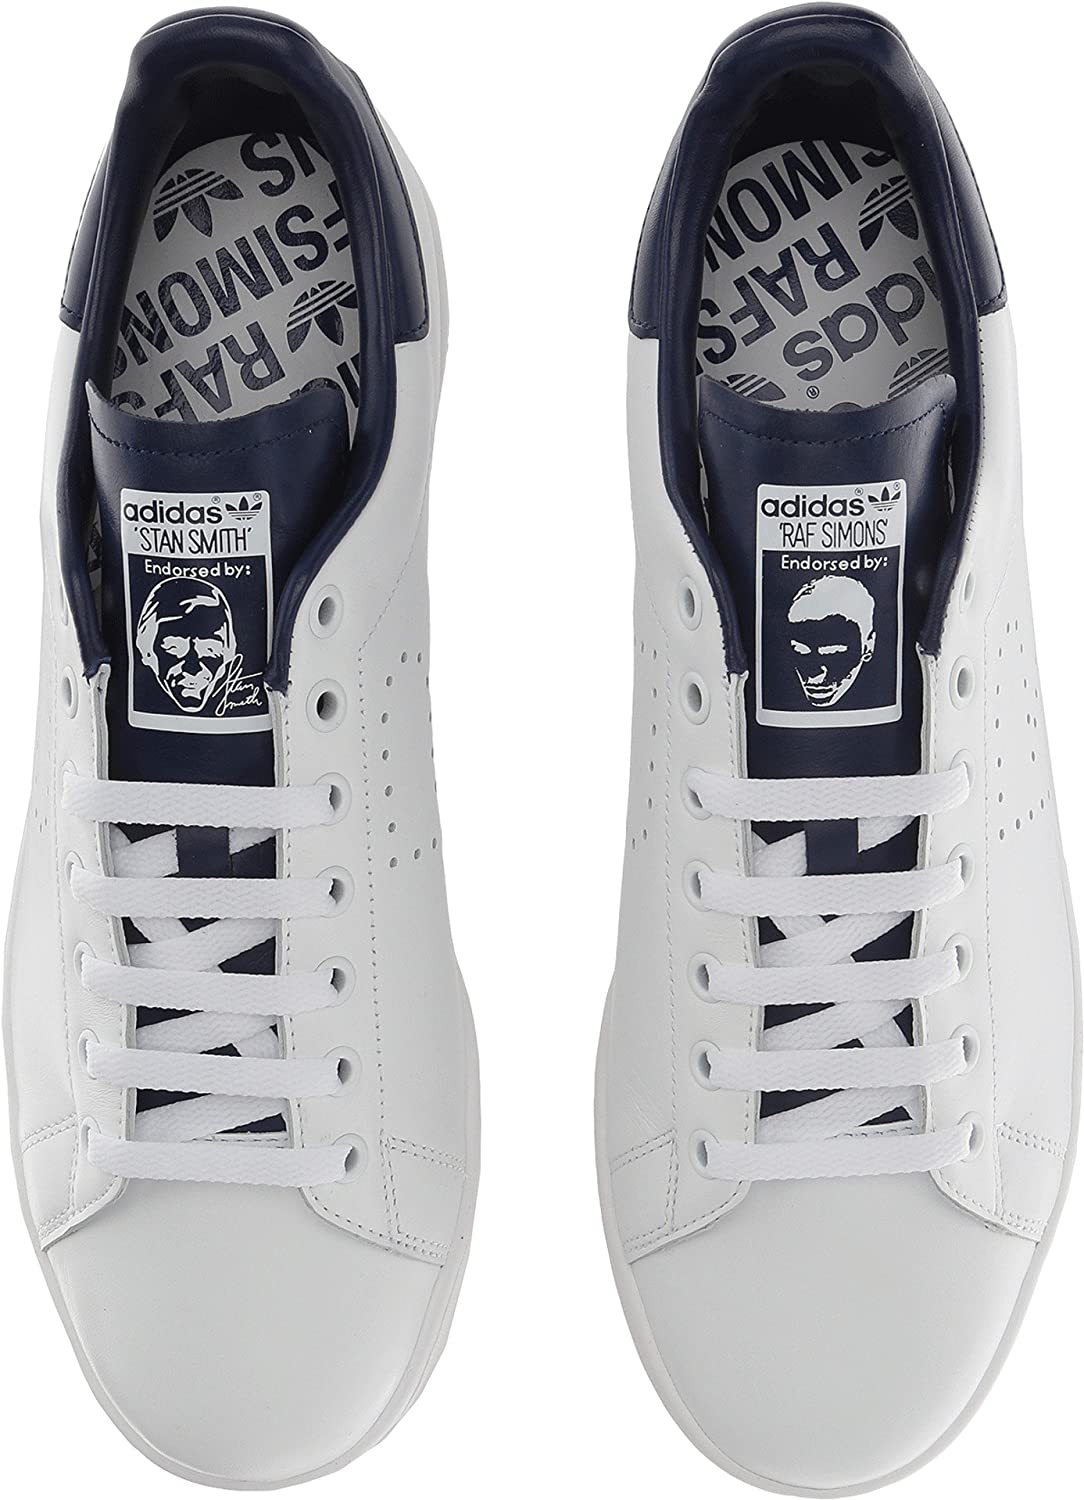 adidas Women's RAF Simons Stan Smith Sneakers B079R4JWWY 8 D UK|Footwear White/Night Sky/Footwear White